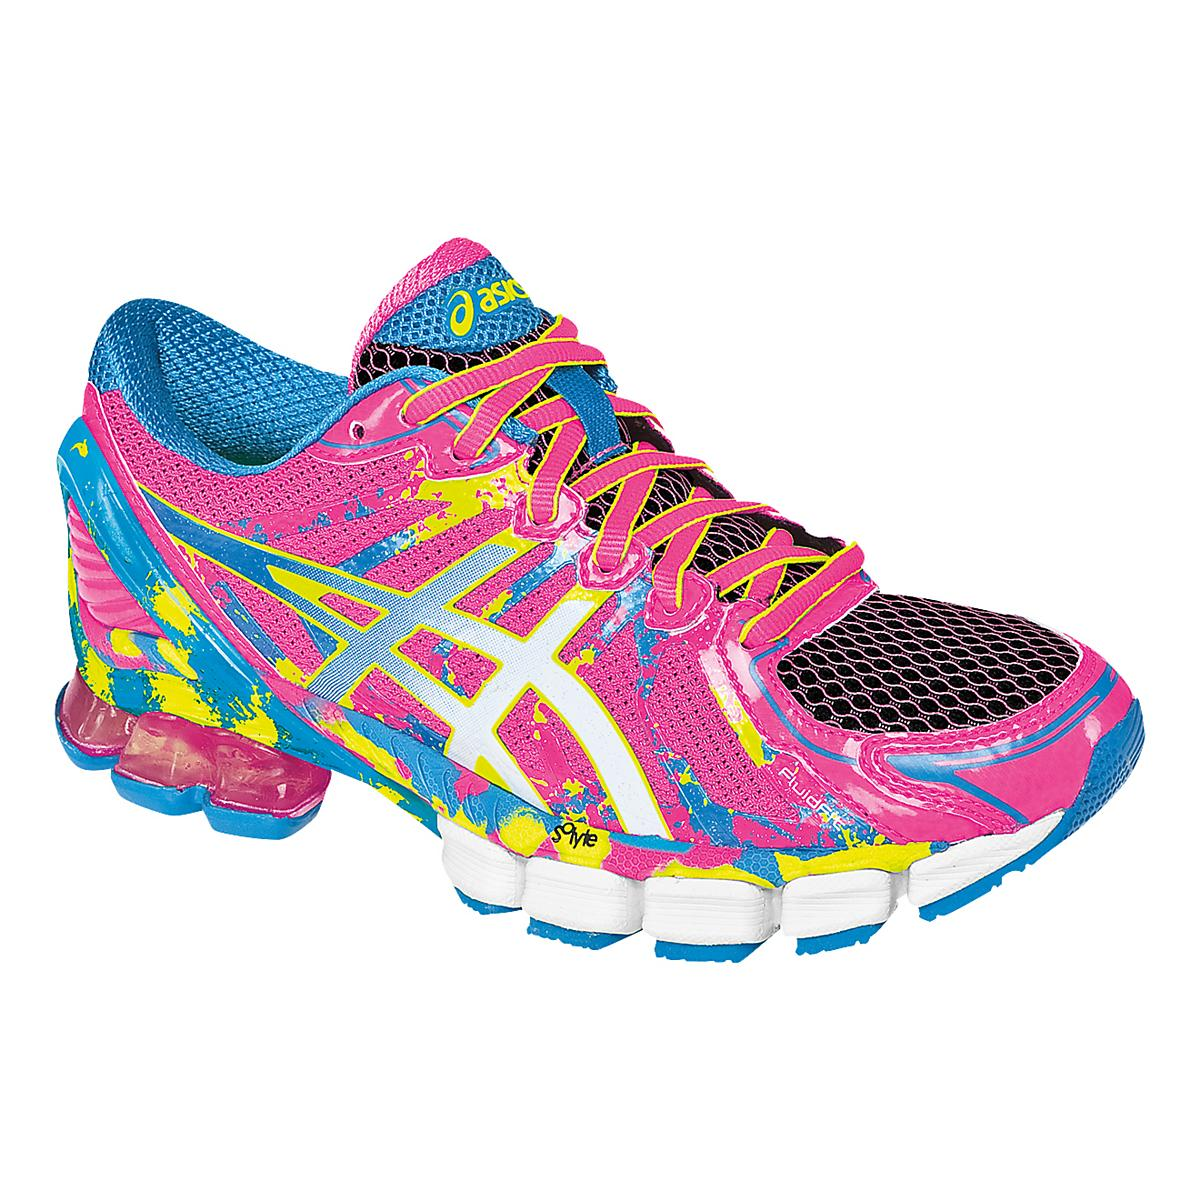 015c1856d77 ... coupon code for womens asics gel sendai 2 running shoe at road runner  sports abc96 e1157